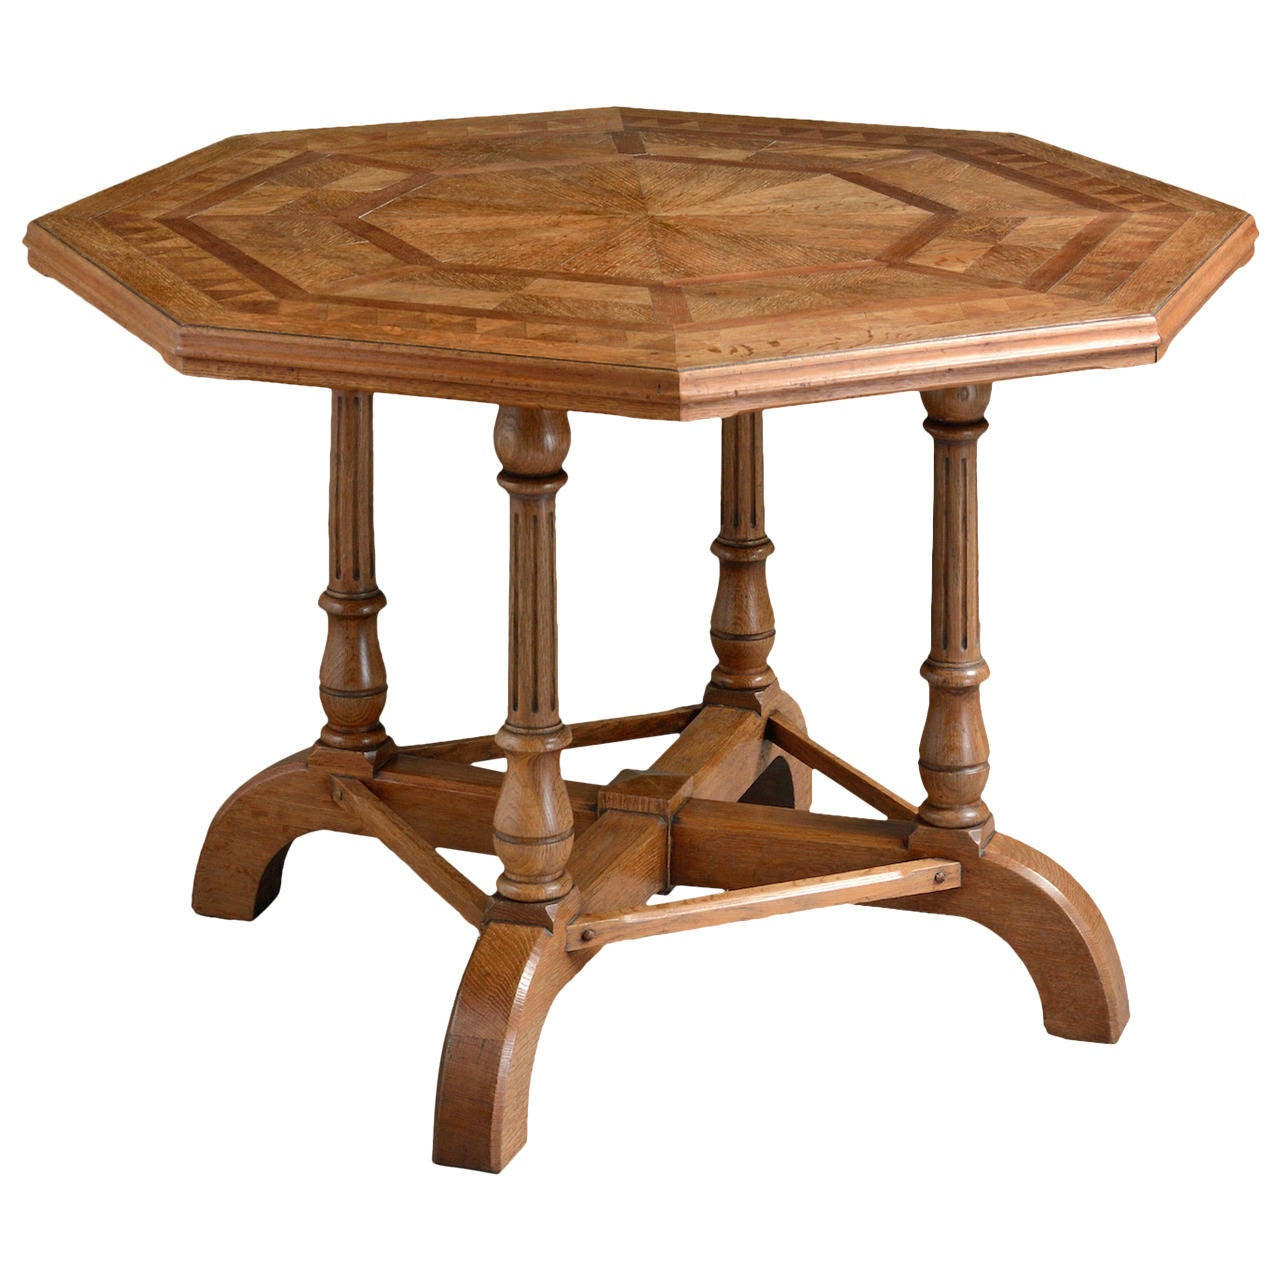 Howard parquetry centre table at 1stdibs for Furniture centre table